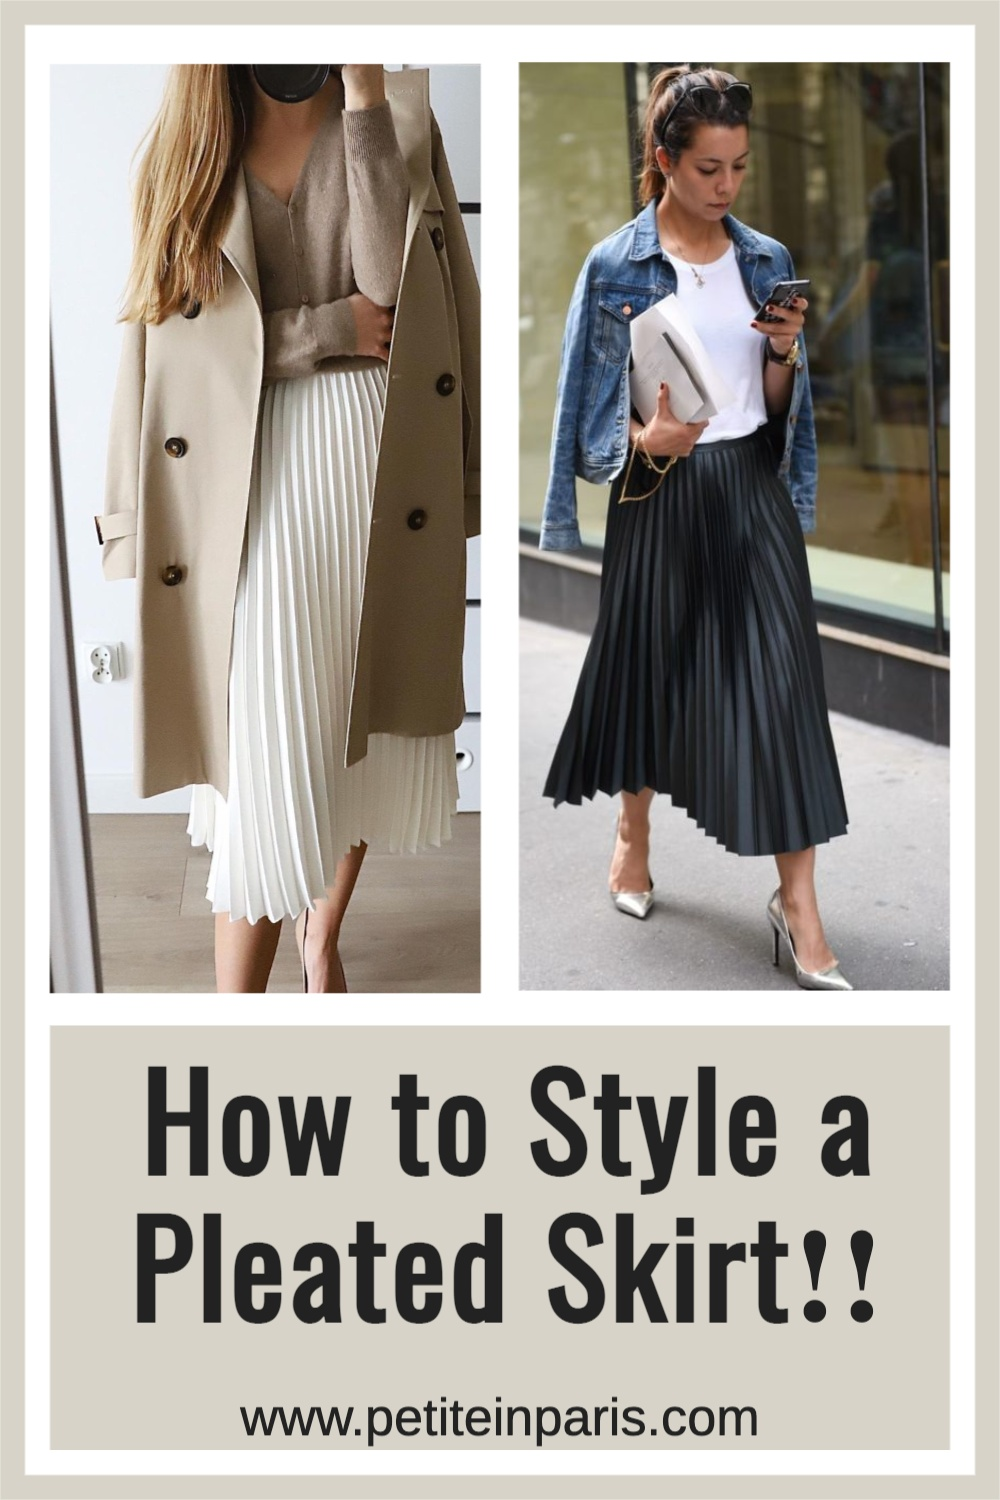 pleated skirts are still in style